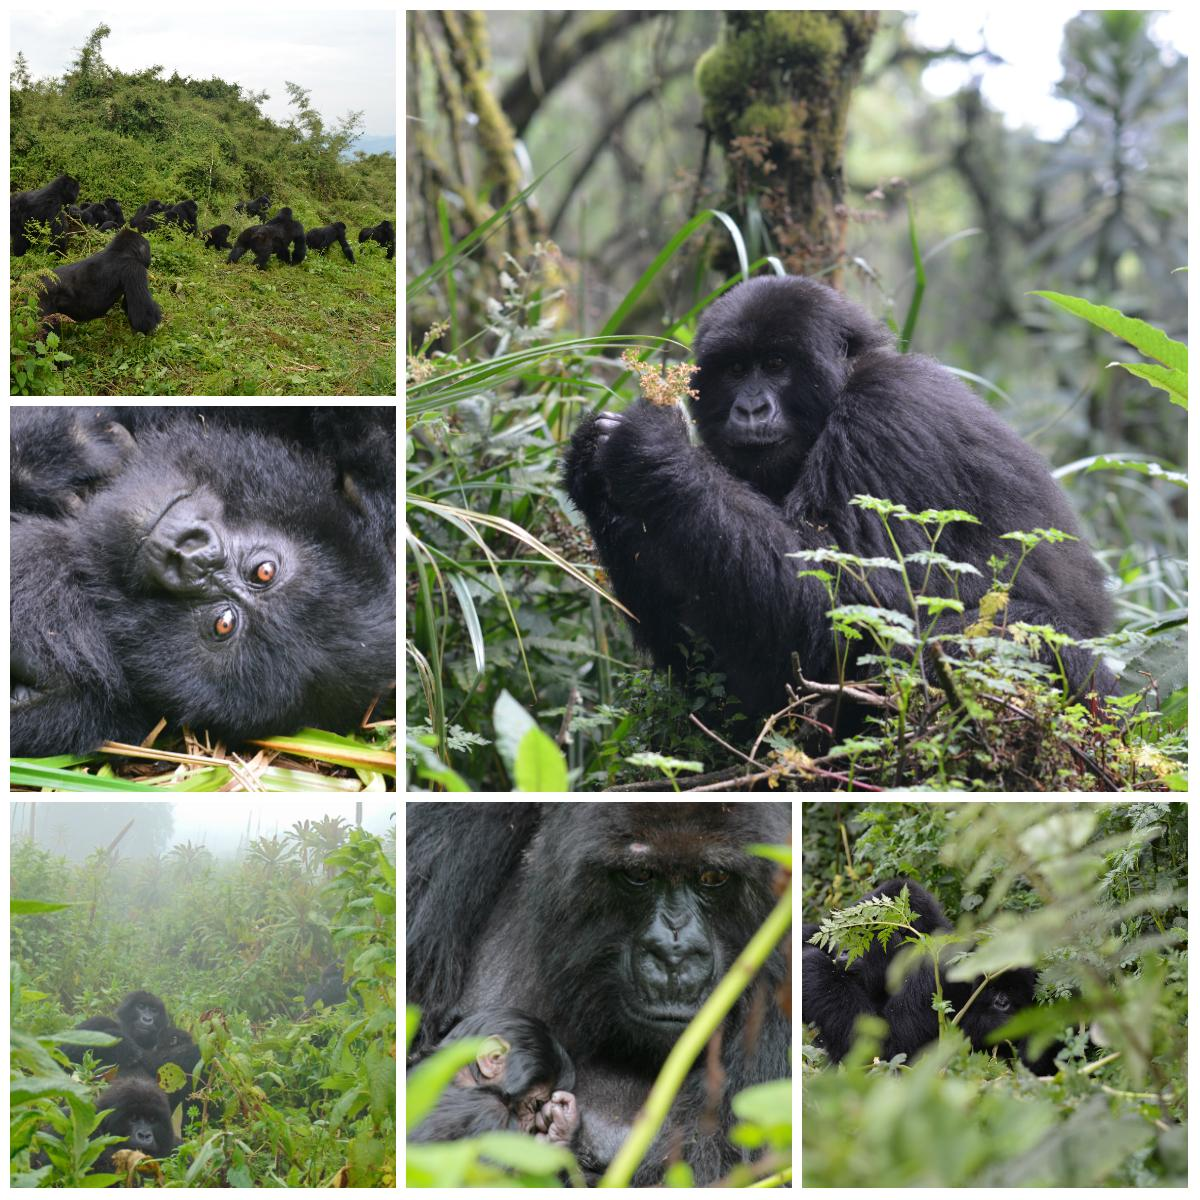 Happy #EndangeredSpeciesDay! We hope you will think about #gorillas & all endangered species today. http://t.co/Zlde1DNK1d